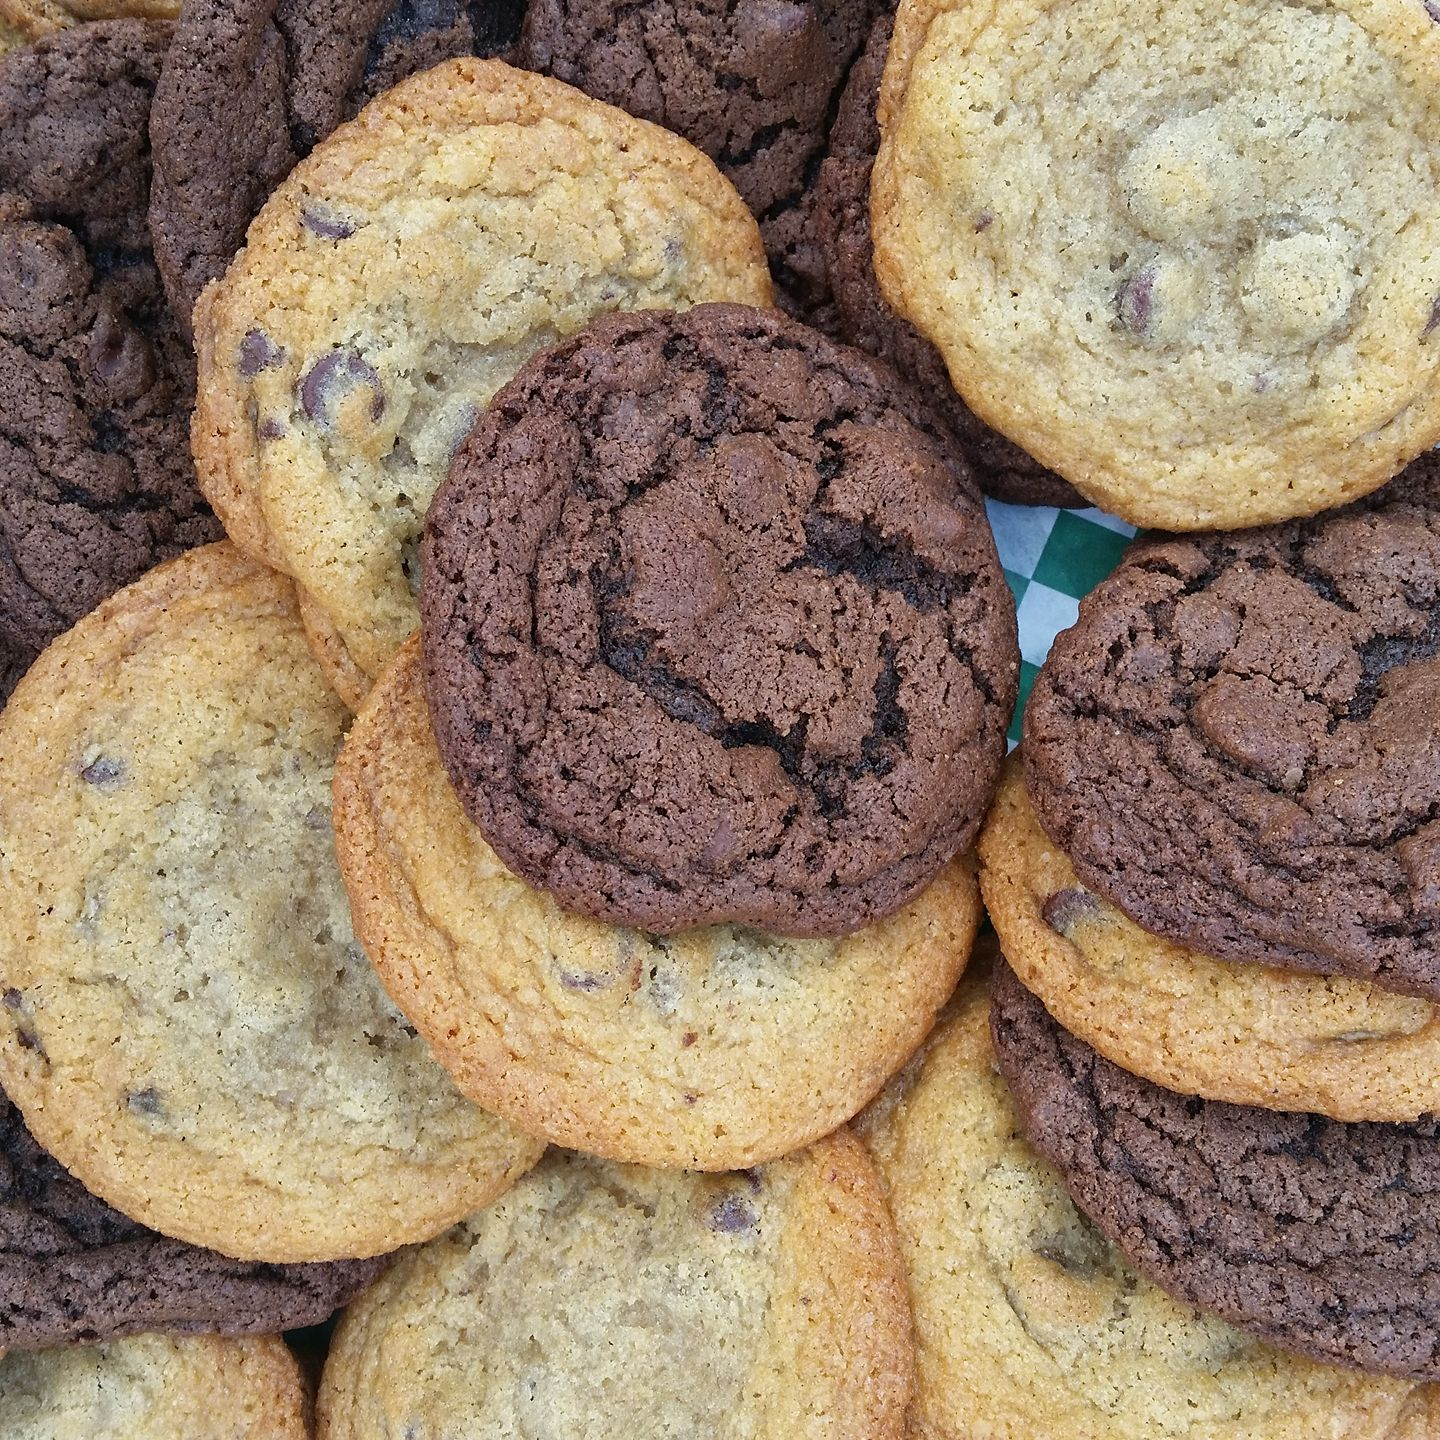 Chocolate Chip and Double Chocolate Chip cookies.